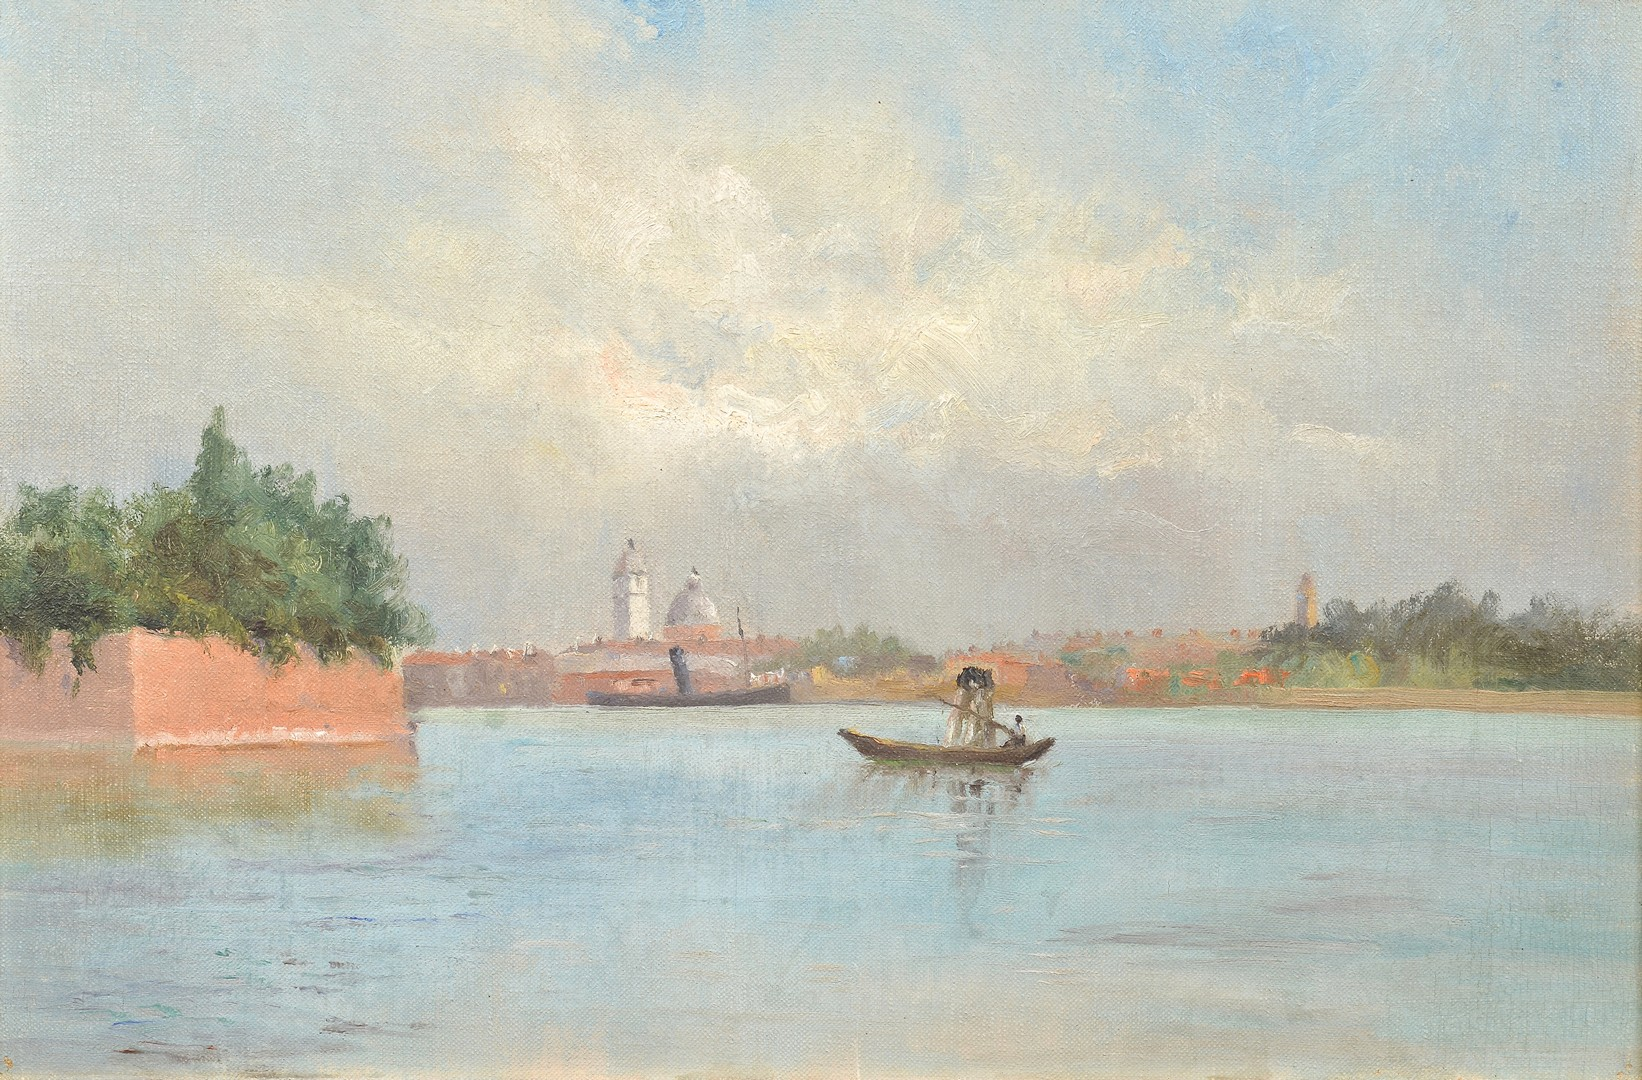 Lot 834: 2 Venetian Scene Artworks, early 20th c.